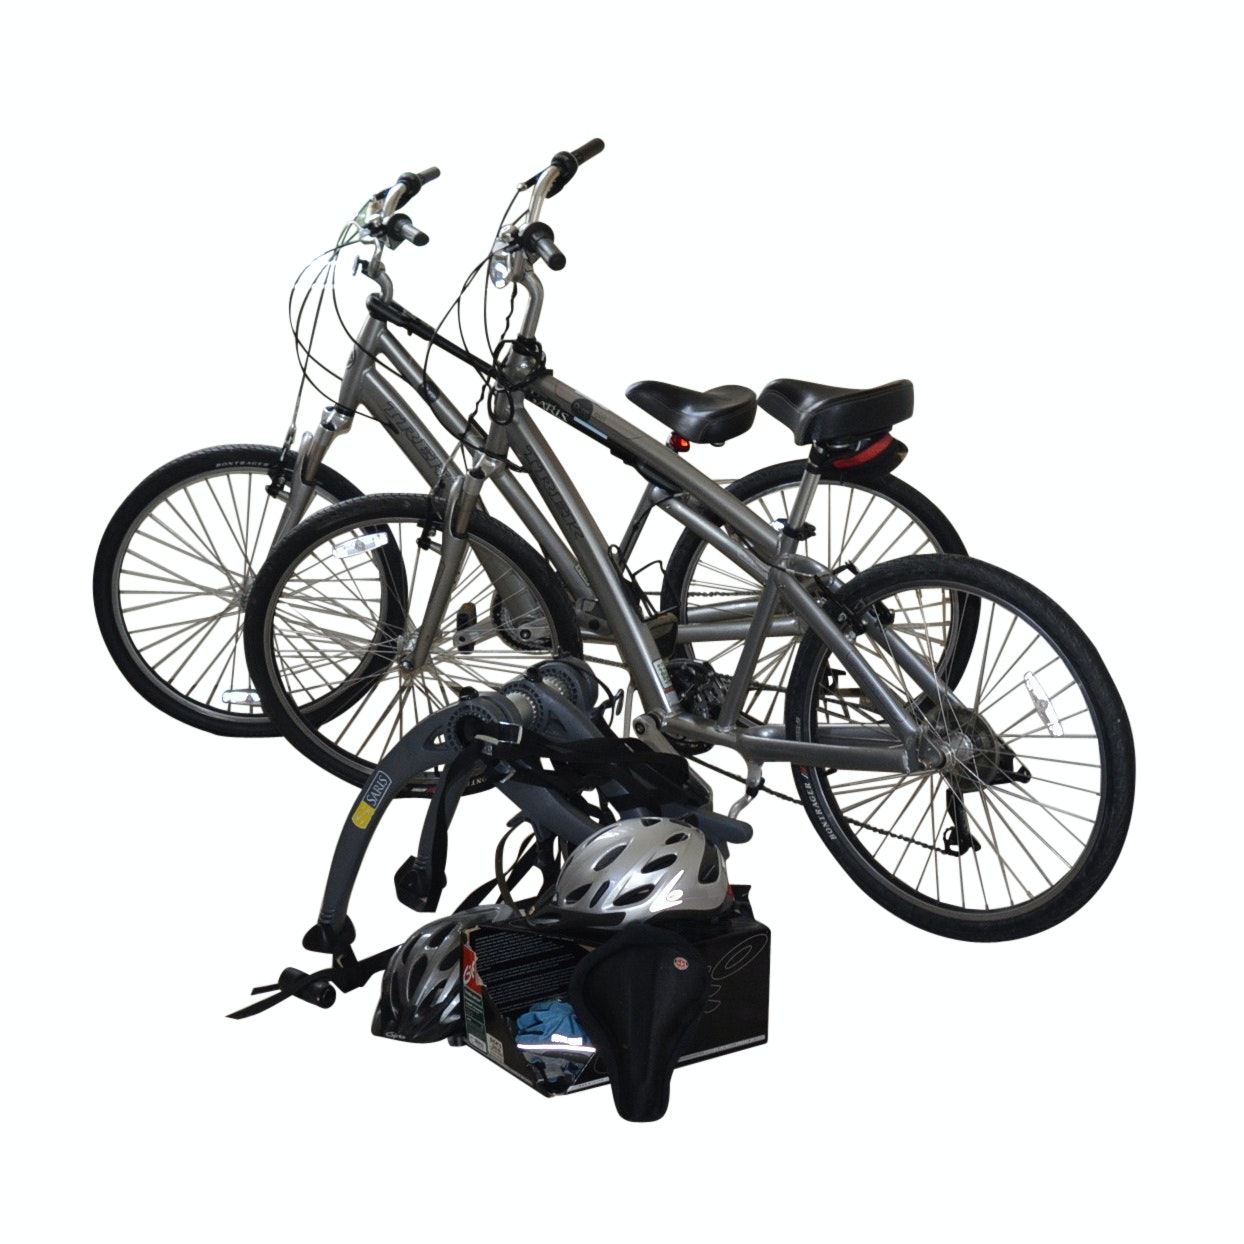 Pair of Trek Pure Sport Bicycles and Accessories